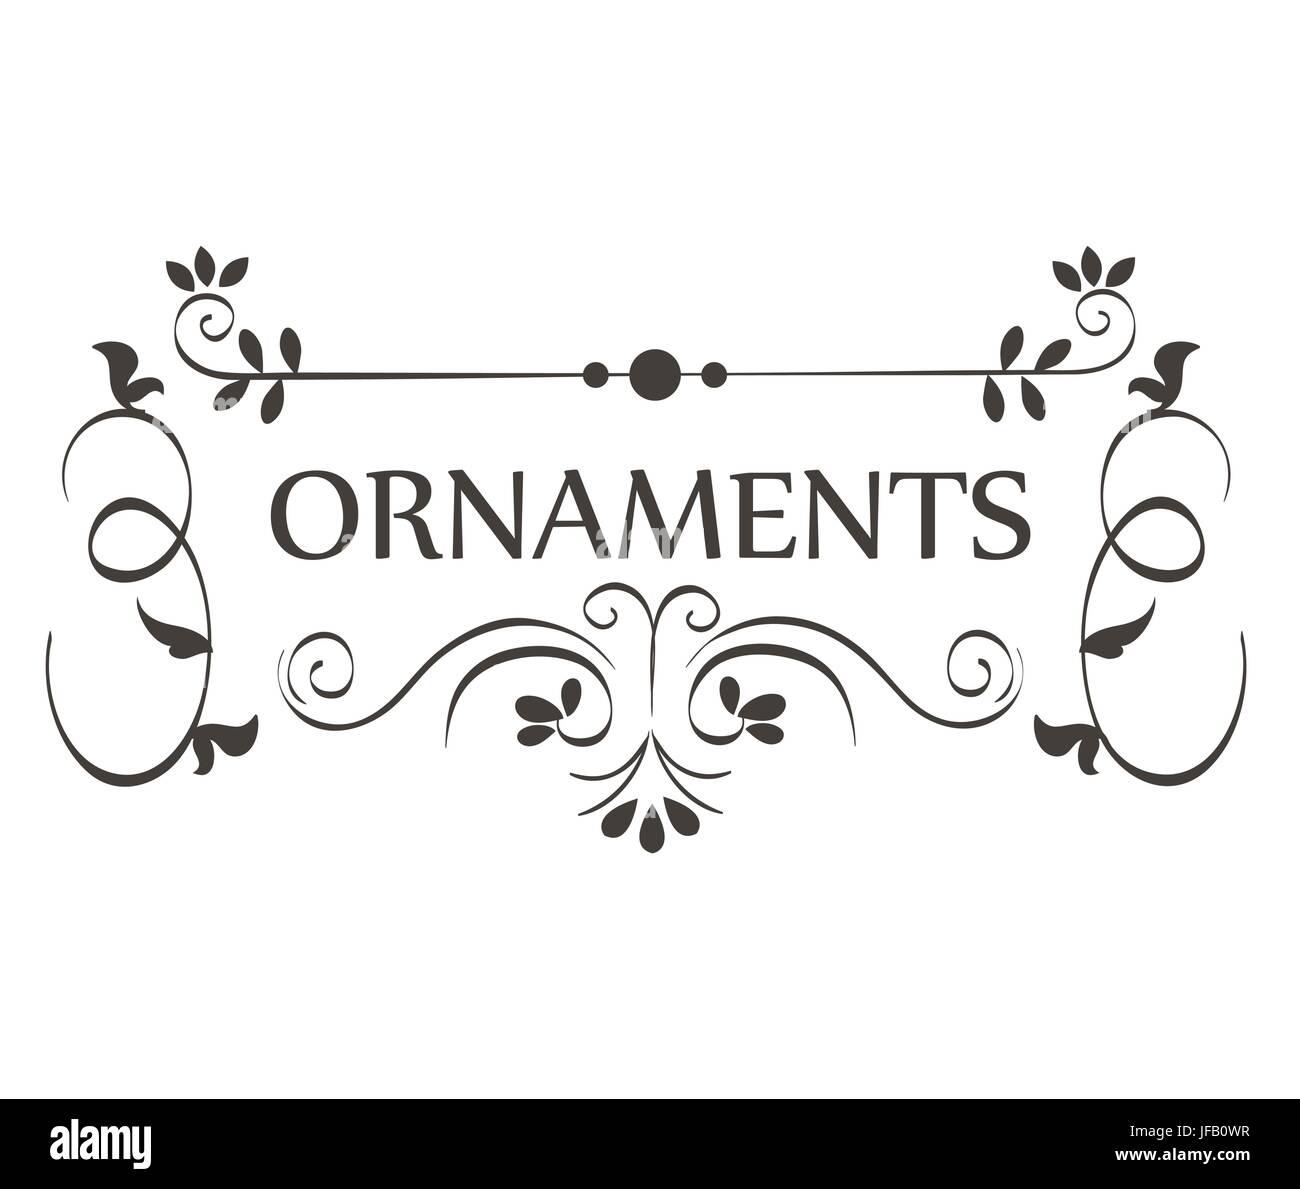 Ornaments Sign With Beautiful Borders Over White Background